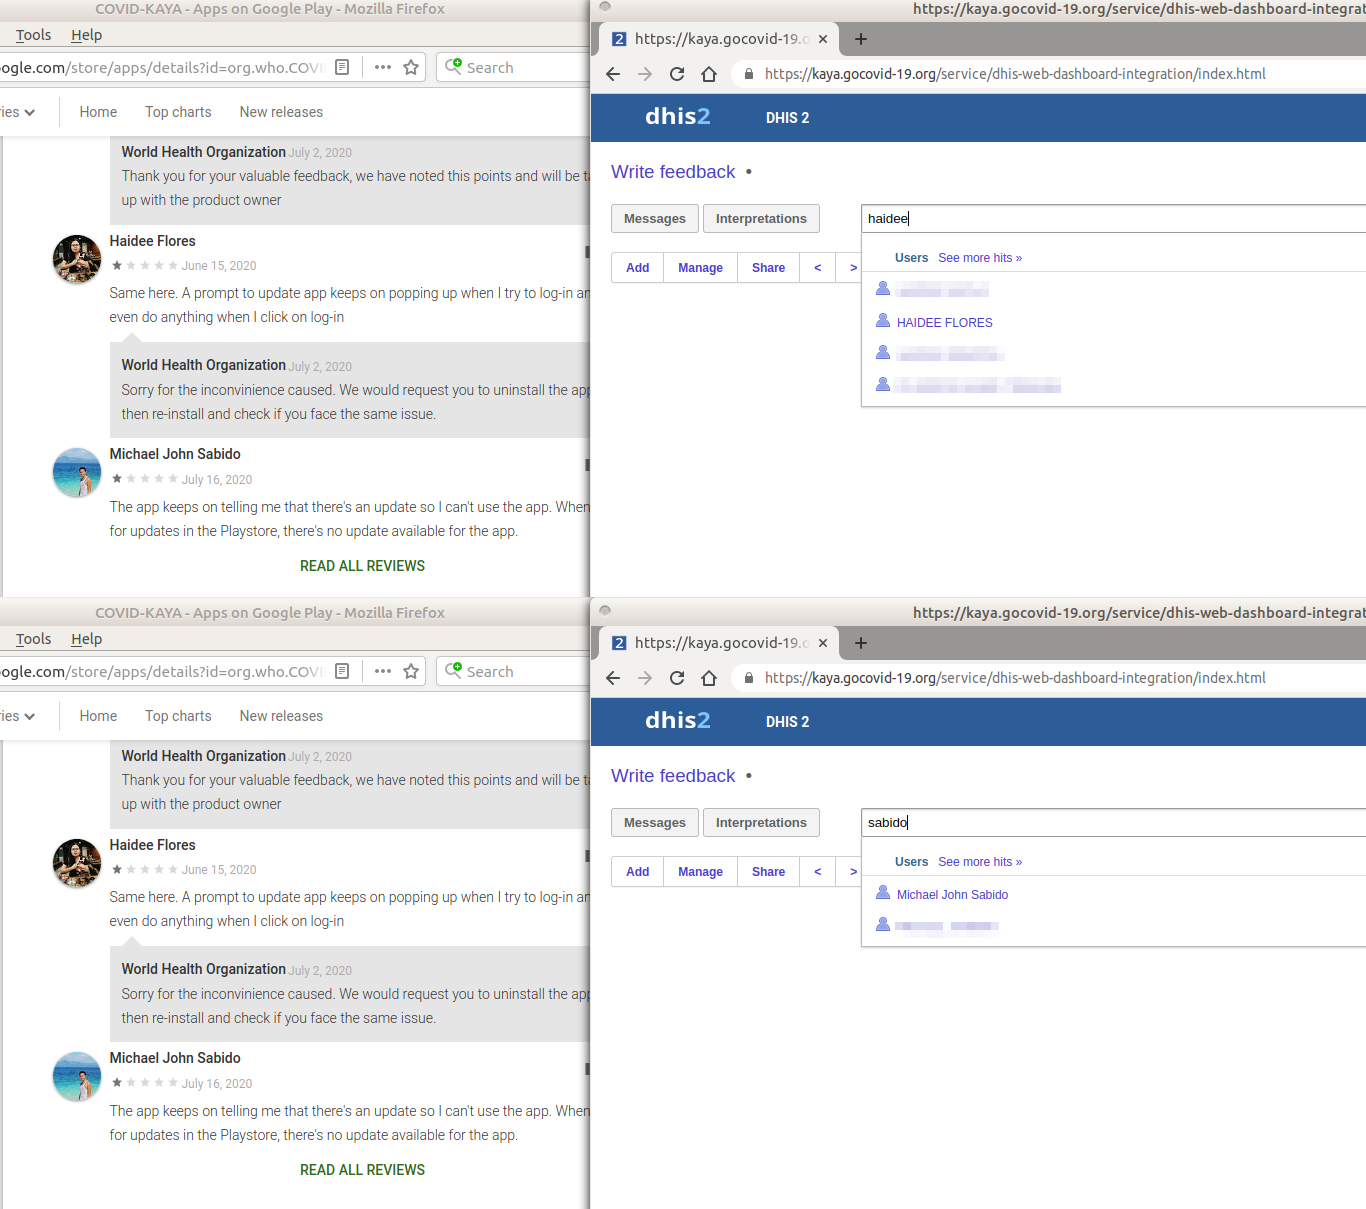 Screenshots of Google Play Store reviews (left) and web app dashboard (right) showing a match between public reviewers and the web app user list.